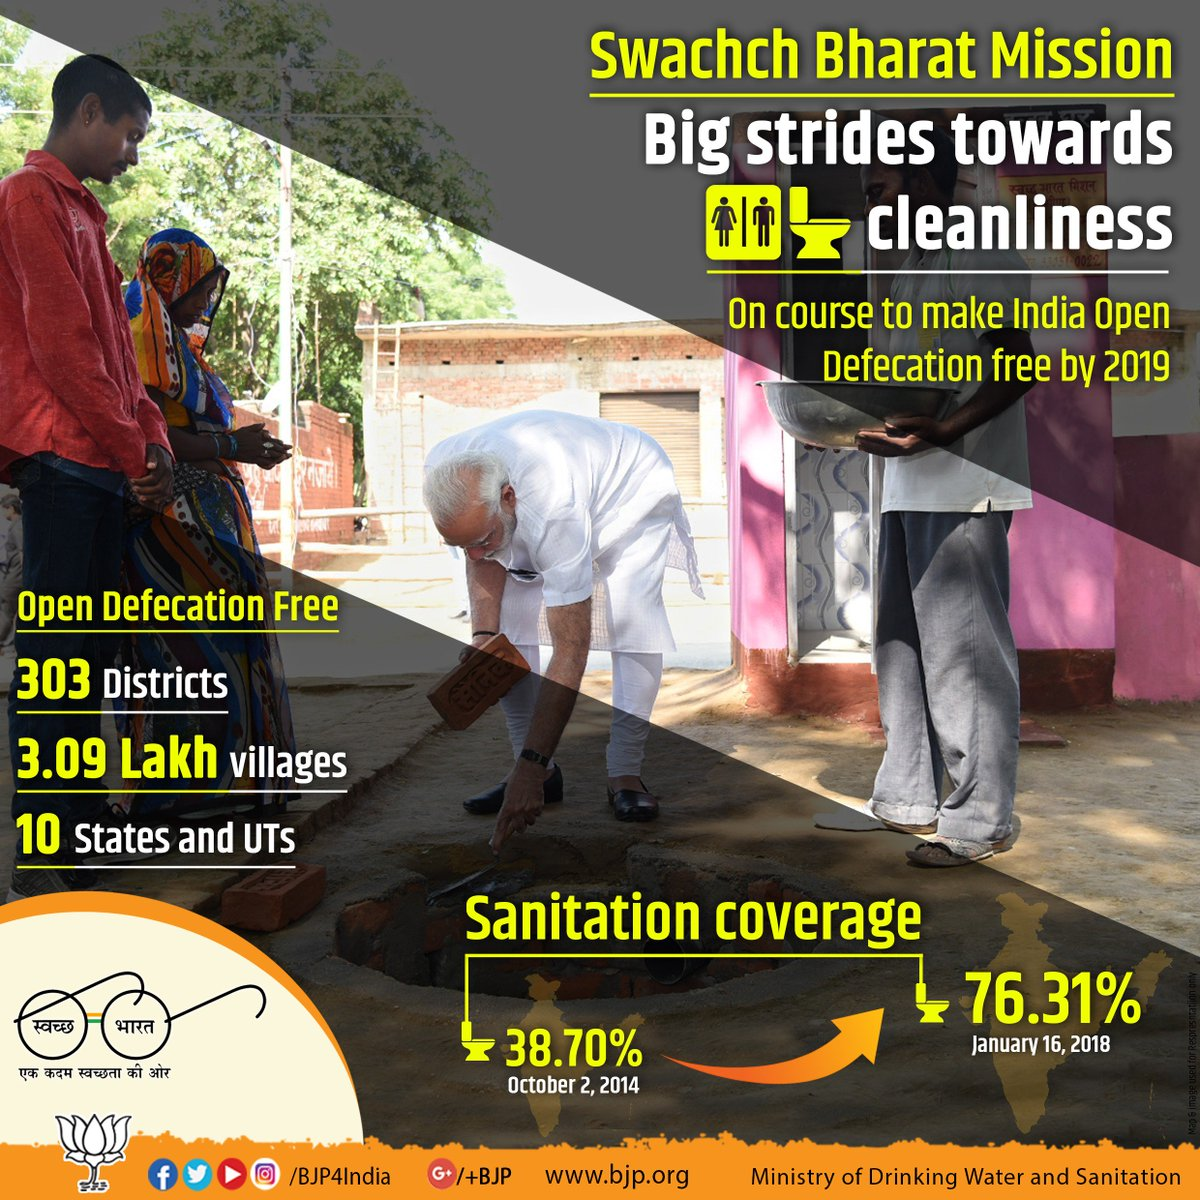 Big strides towards cleanliness : 10 states and UTs have been declared as Open Defecation Free covering 3.09 lakh villages under Swachh Bharat Mission.